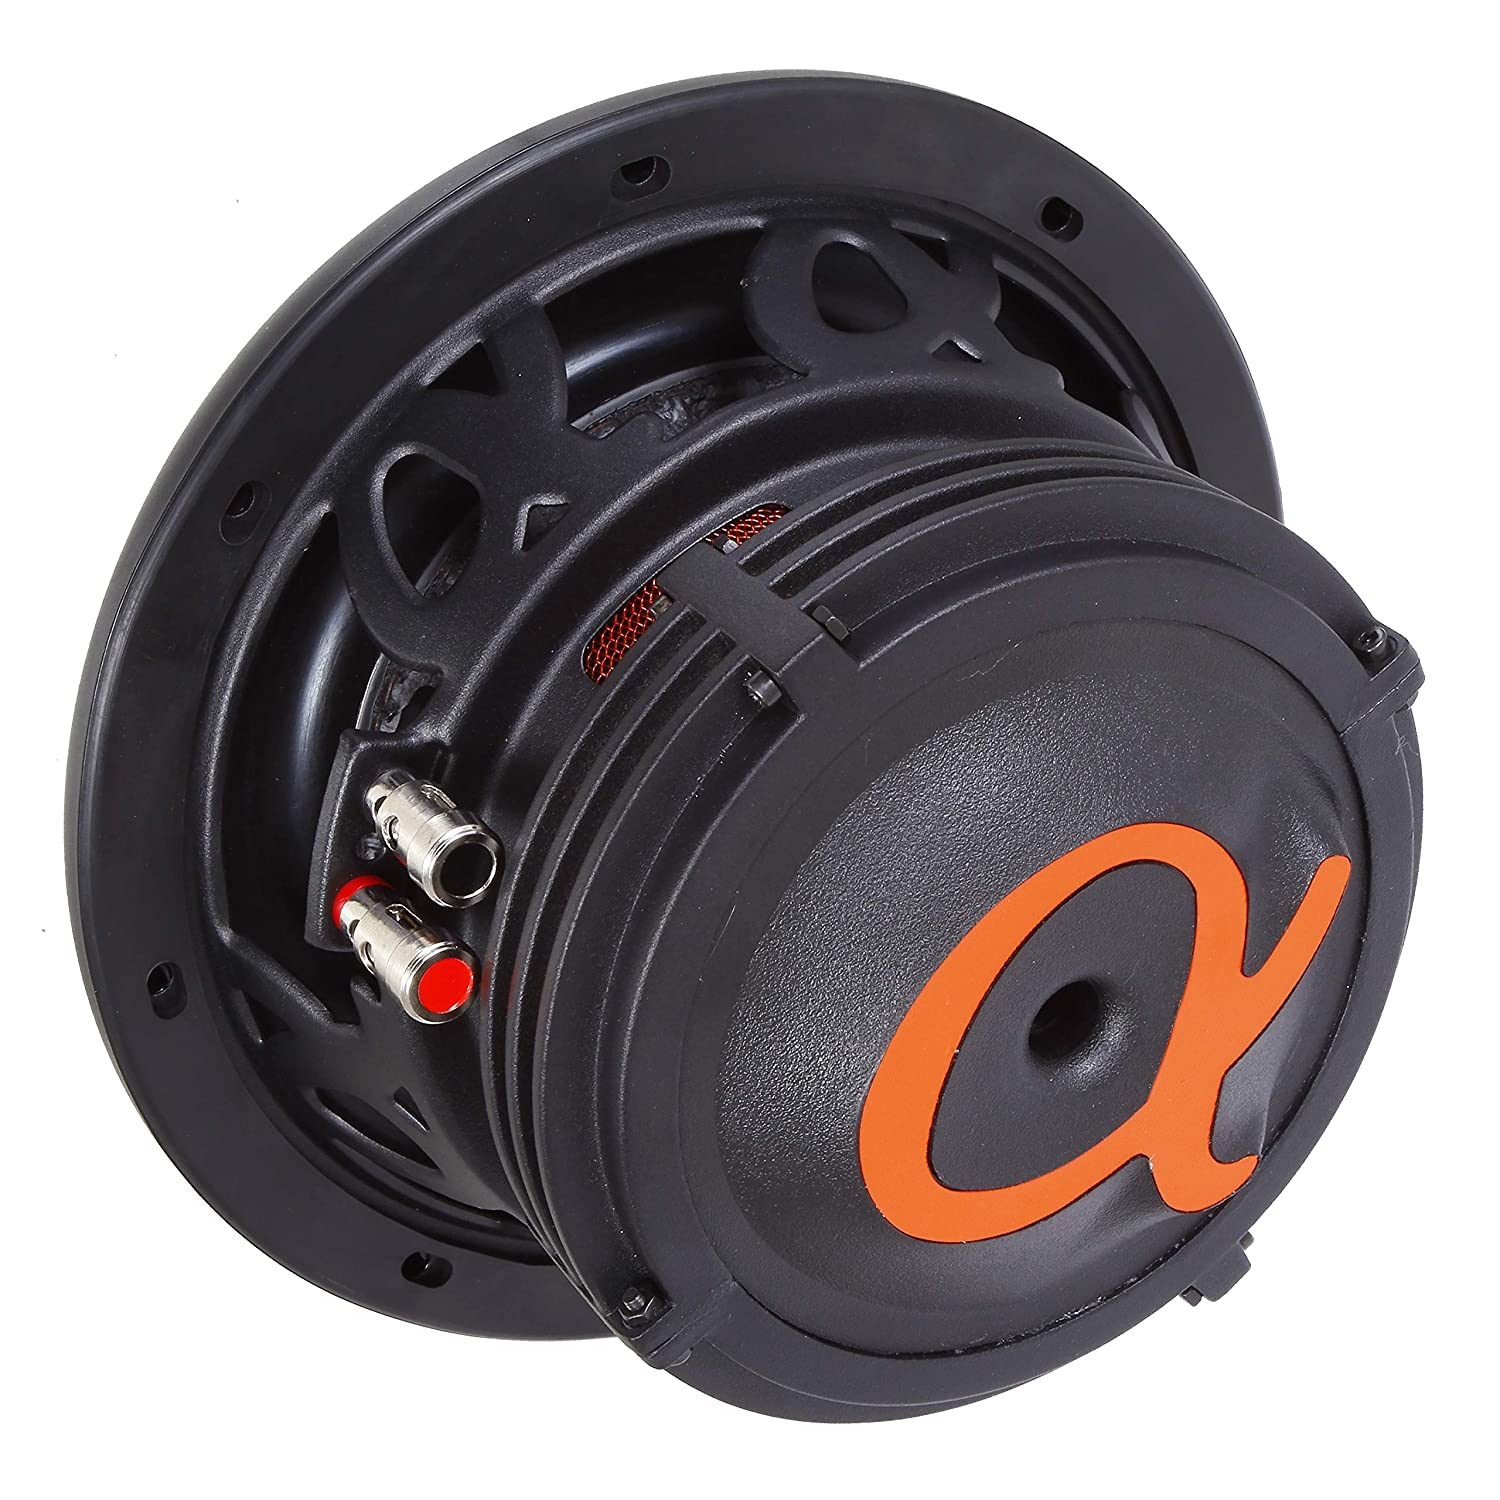 "400 Watts RMS Dual 4 Ohm Car Subwoofer w// High Grade Magnet Non Pressed Paper Carbon Stitched Cone Cooling Rings System Speaker Bass Sub Woofer Alphasonik NSW410 Neuron 400 Series 10/"" 1200 Watts Max"